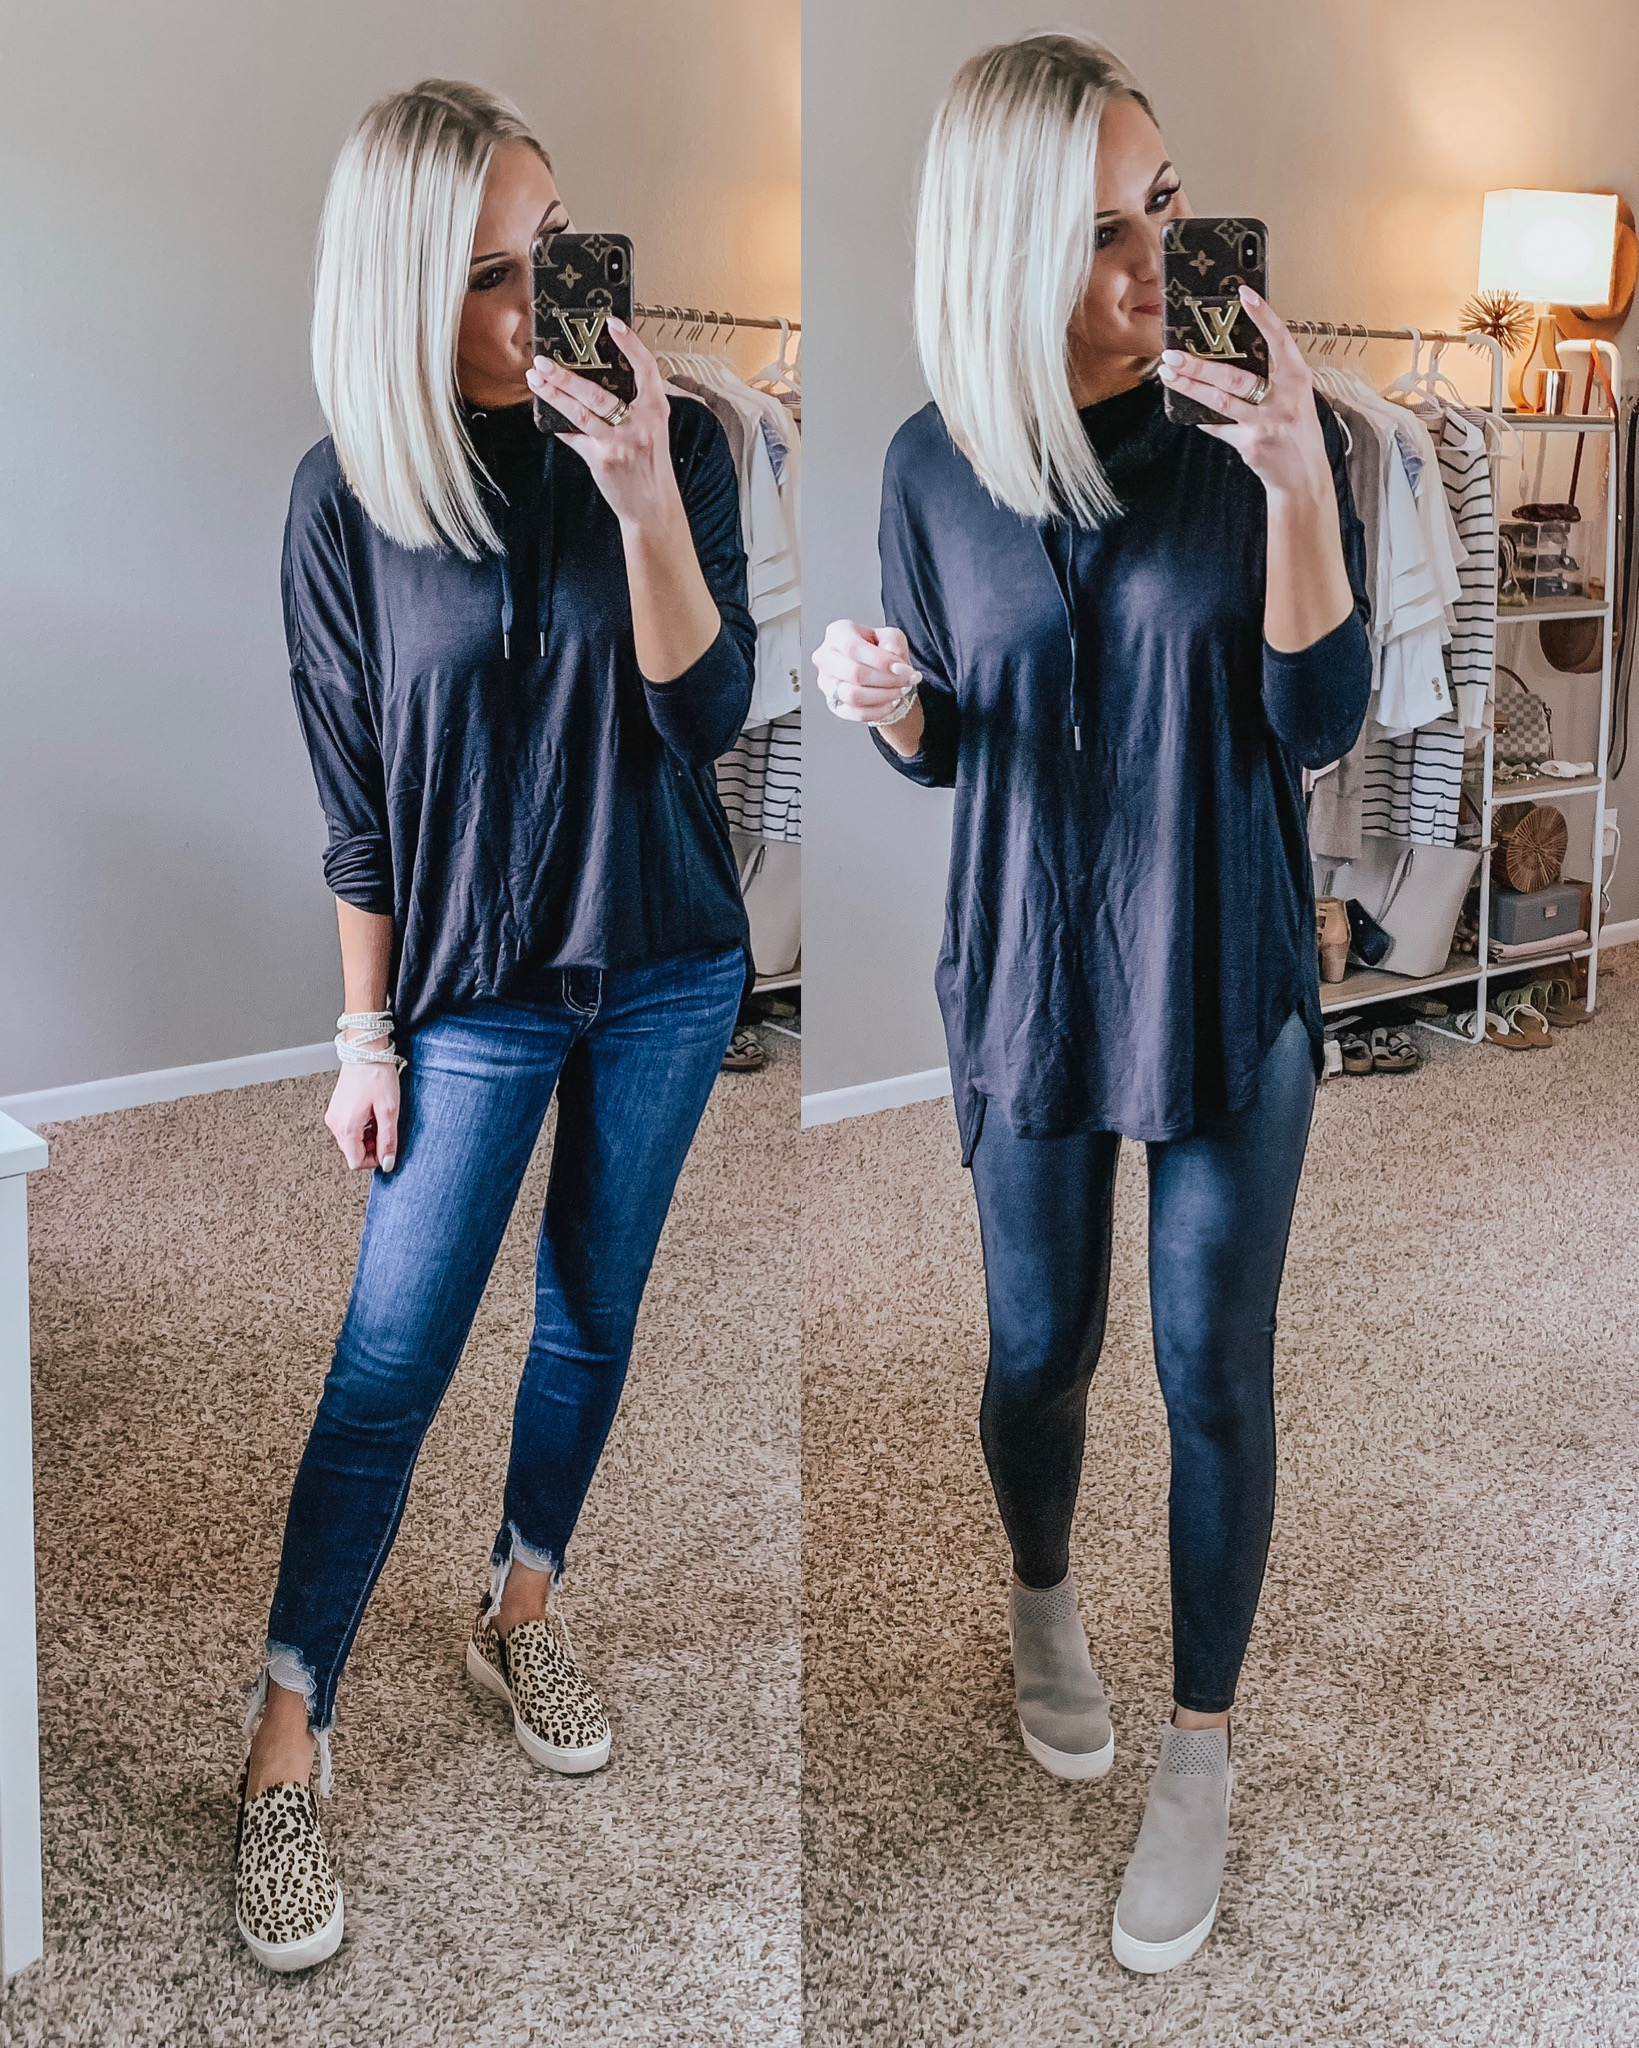 Affordable Fall Transition Outfits | Style Blogger Lauren Meyer shares Affordable Fall Transition Outfits